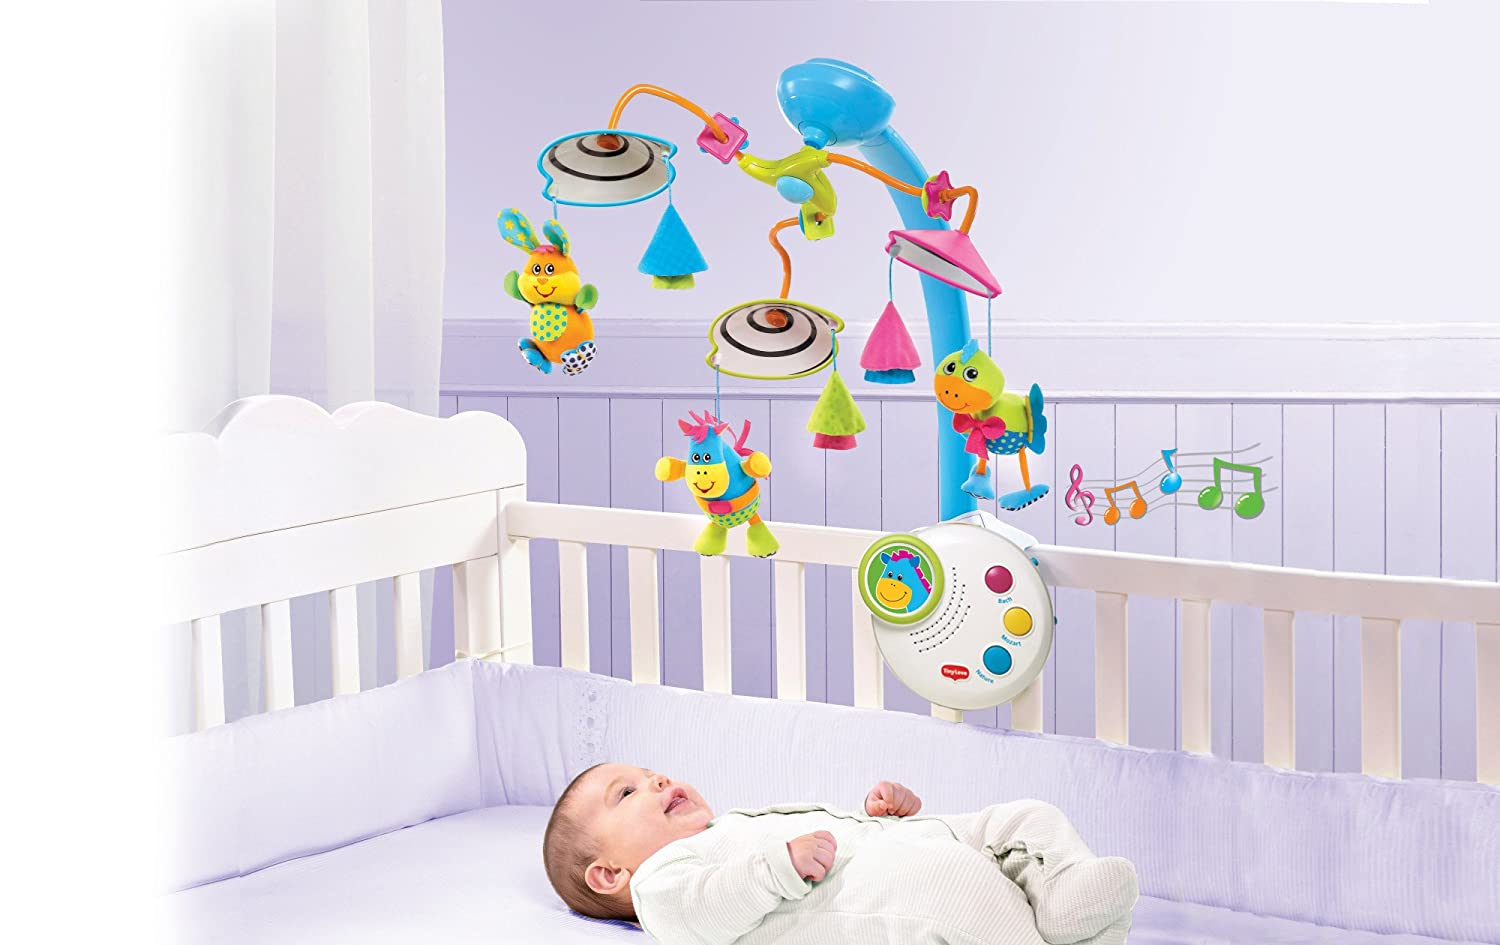 Tiny Love 3-in-1 Magical Night Musical Mobile Converts to Starry Night Lamp